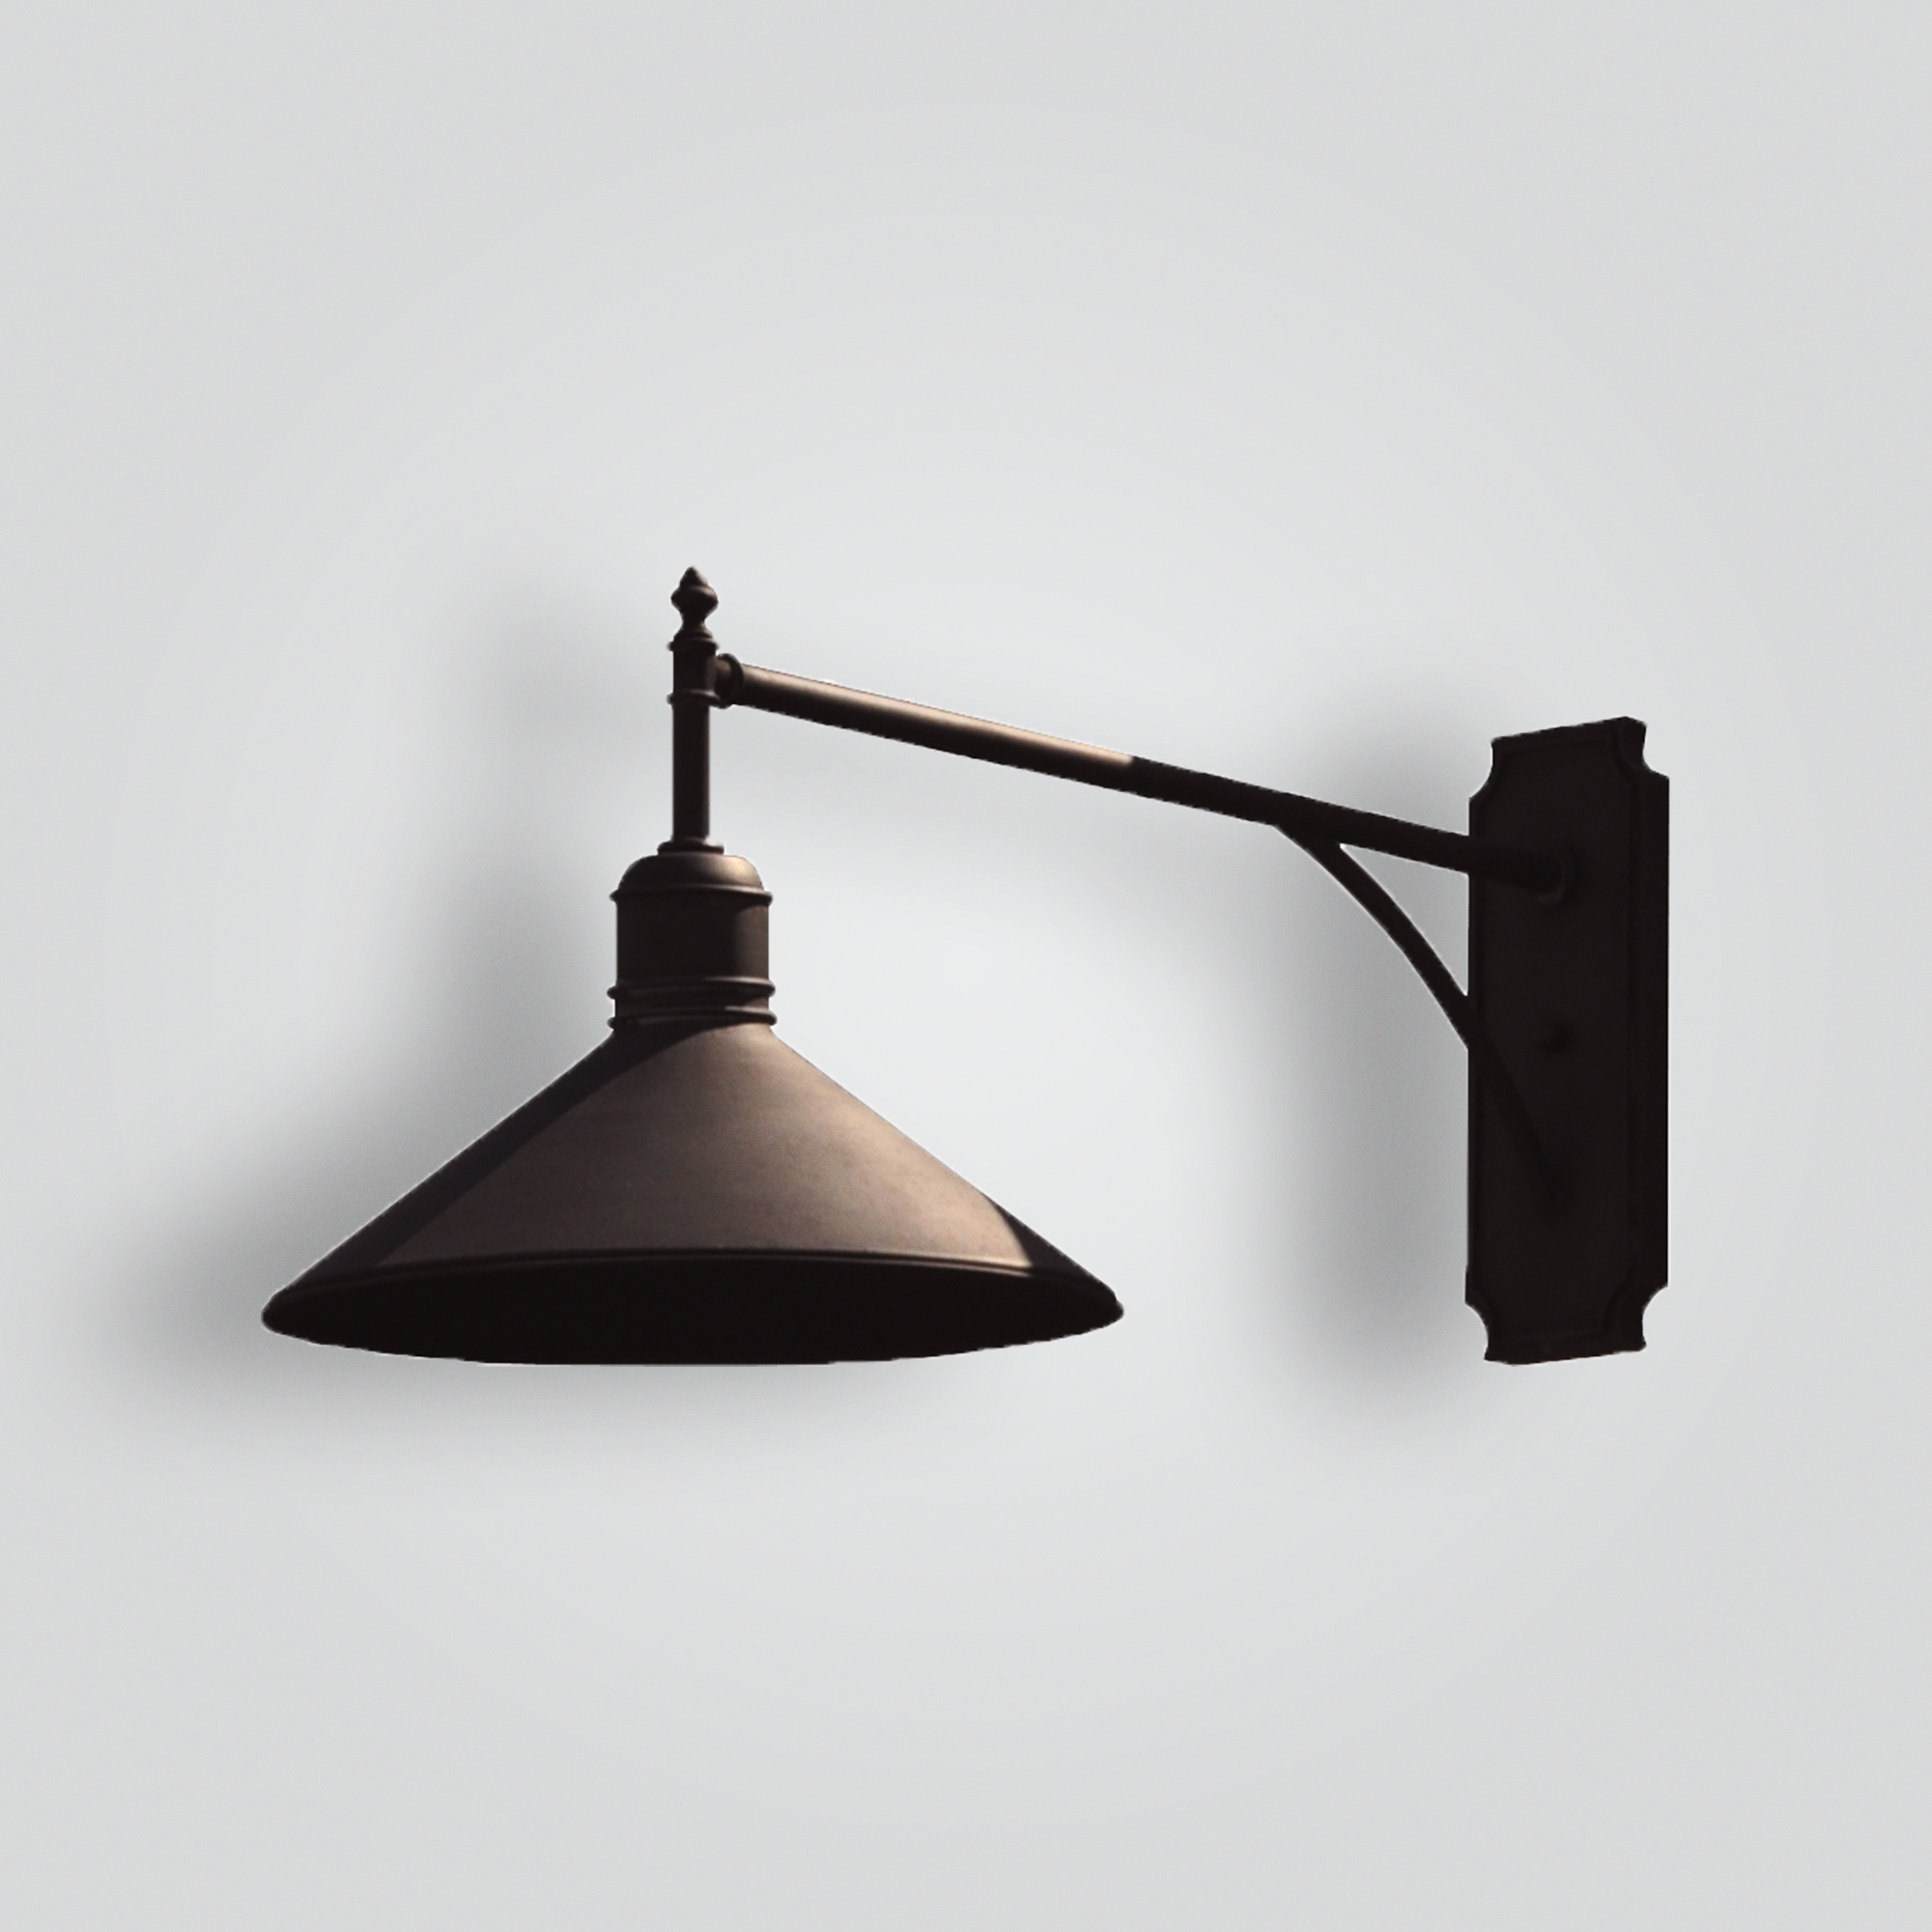 80598-mb1-ir-w-ba-side-view-brass-shade-wall – ADG Lighting Collection